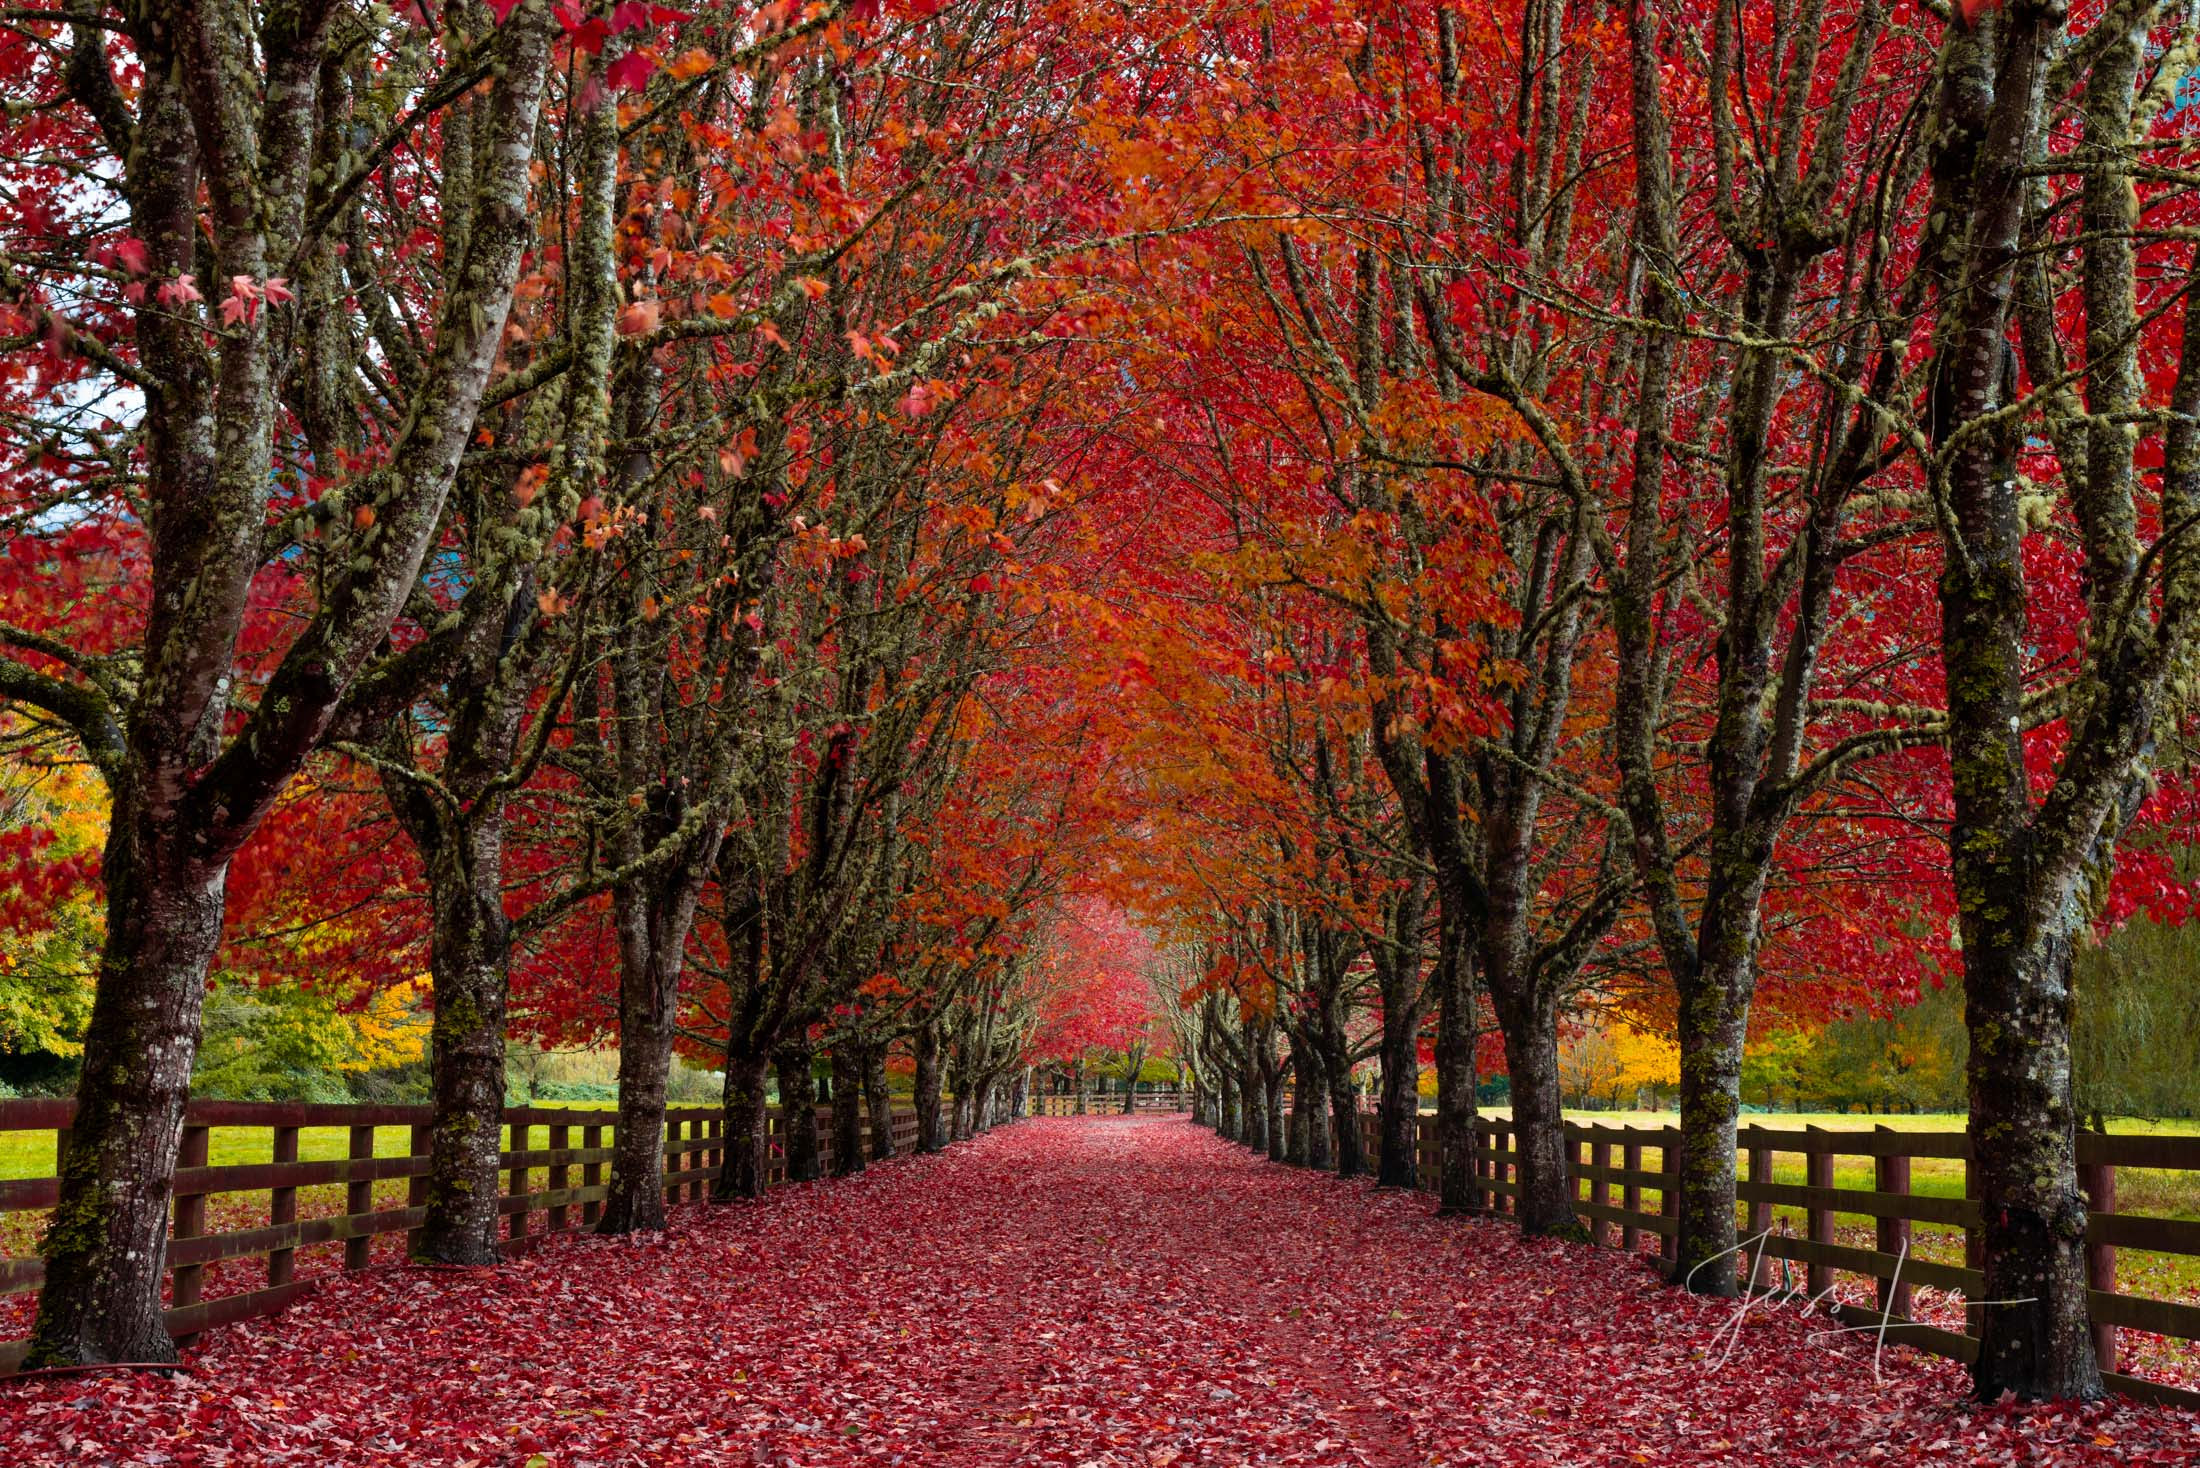 photo of autumn driveway in Washington, autumn leaves photography, fall in Washington state, autumn landscape photography, autumn, fall, red, orange colors, driveway, Pacific Northwest, PNW, Washingto, photo